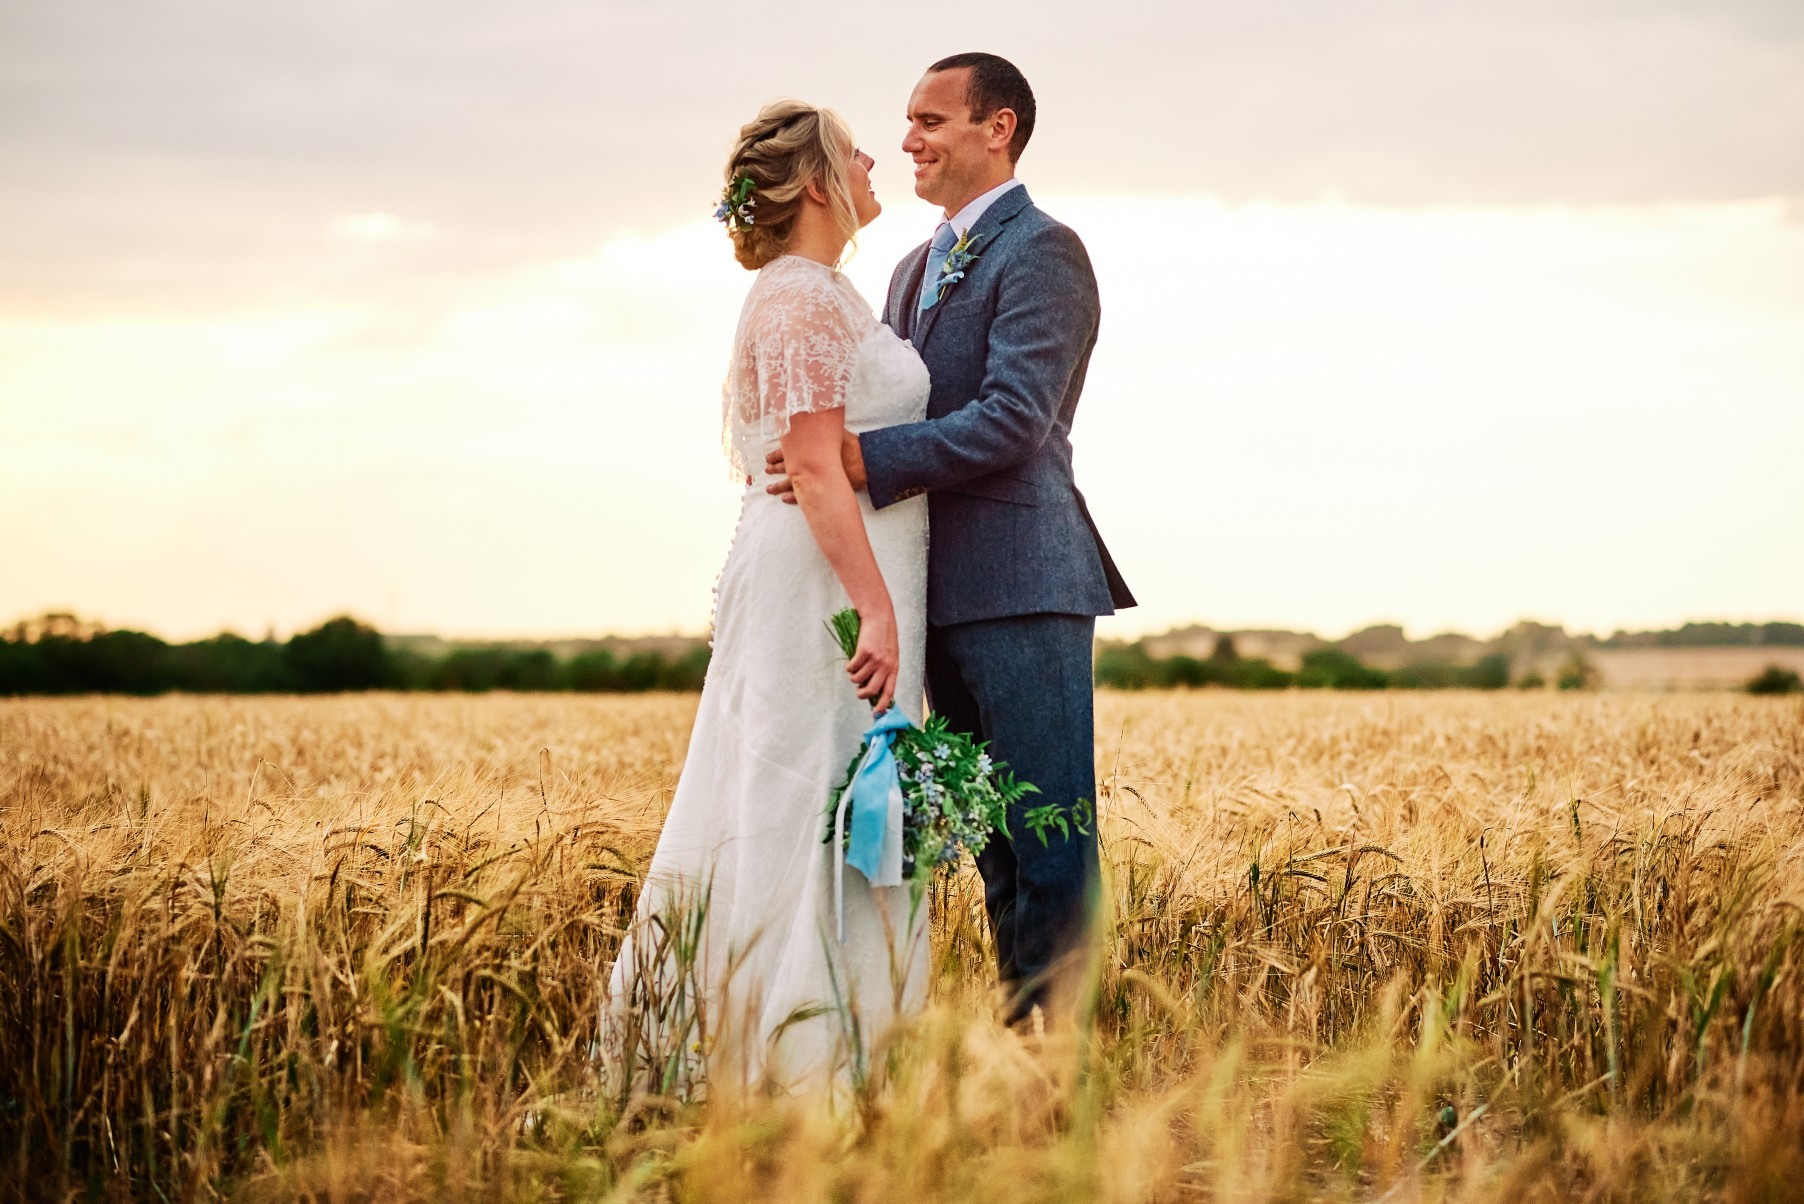 nhs wedding - paramedic wedding - blue and gold wedding - outdoor wedding - micro wedding - surprise wedding - bride and groom in field